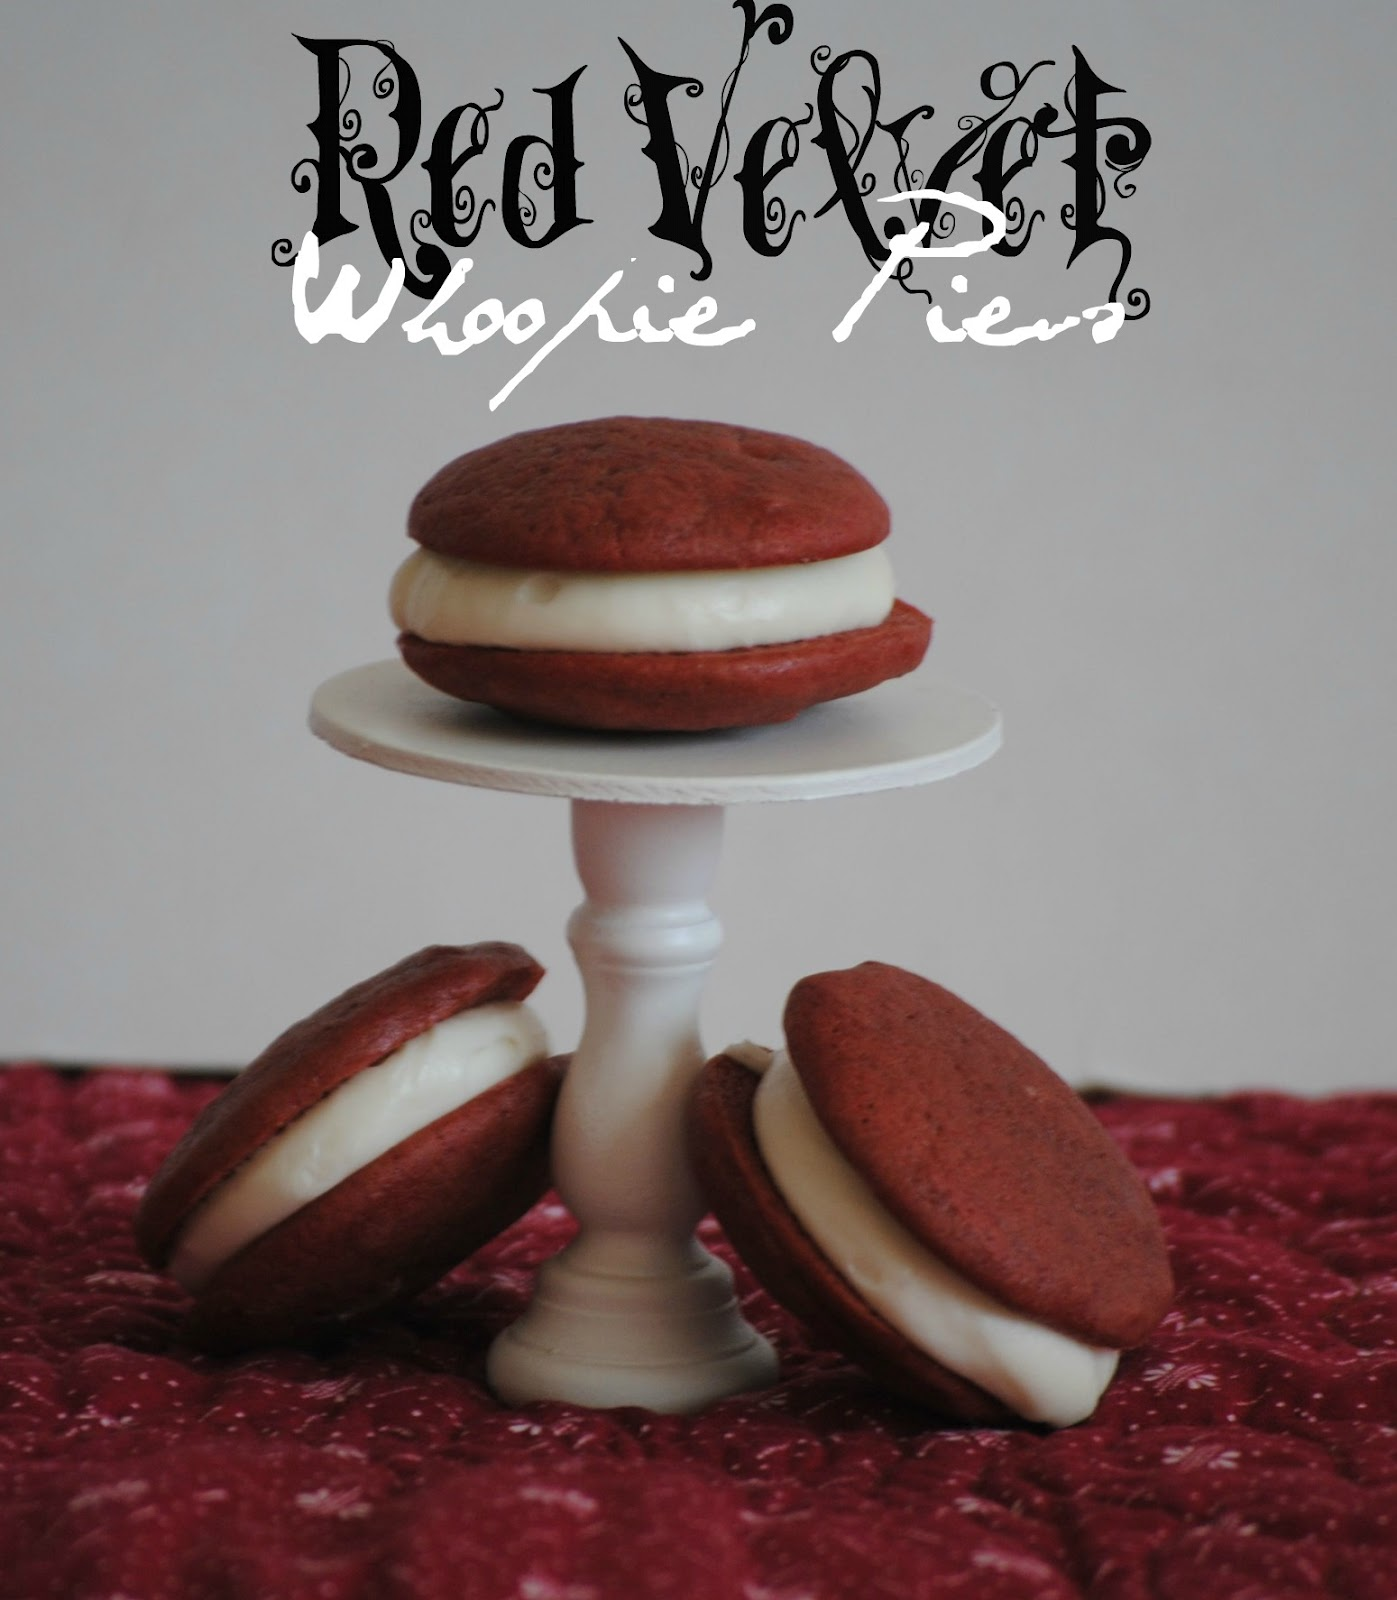 The Farm Girl Recipes: Red Velvet Whoopie Pies